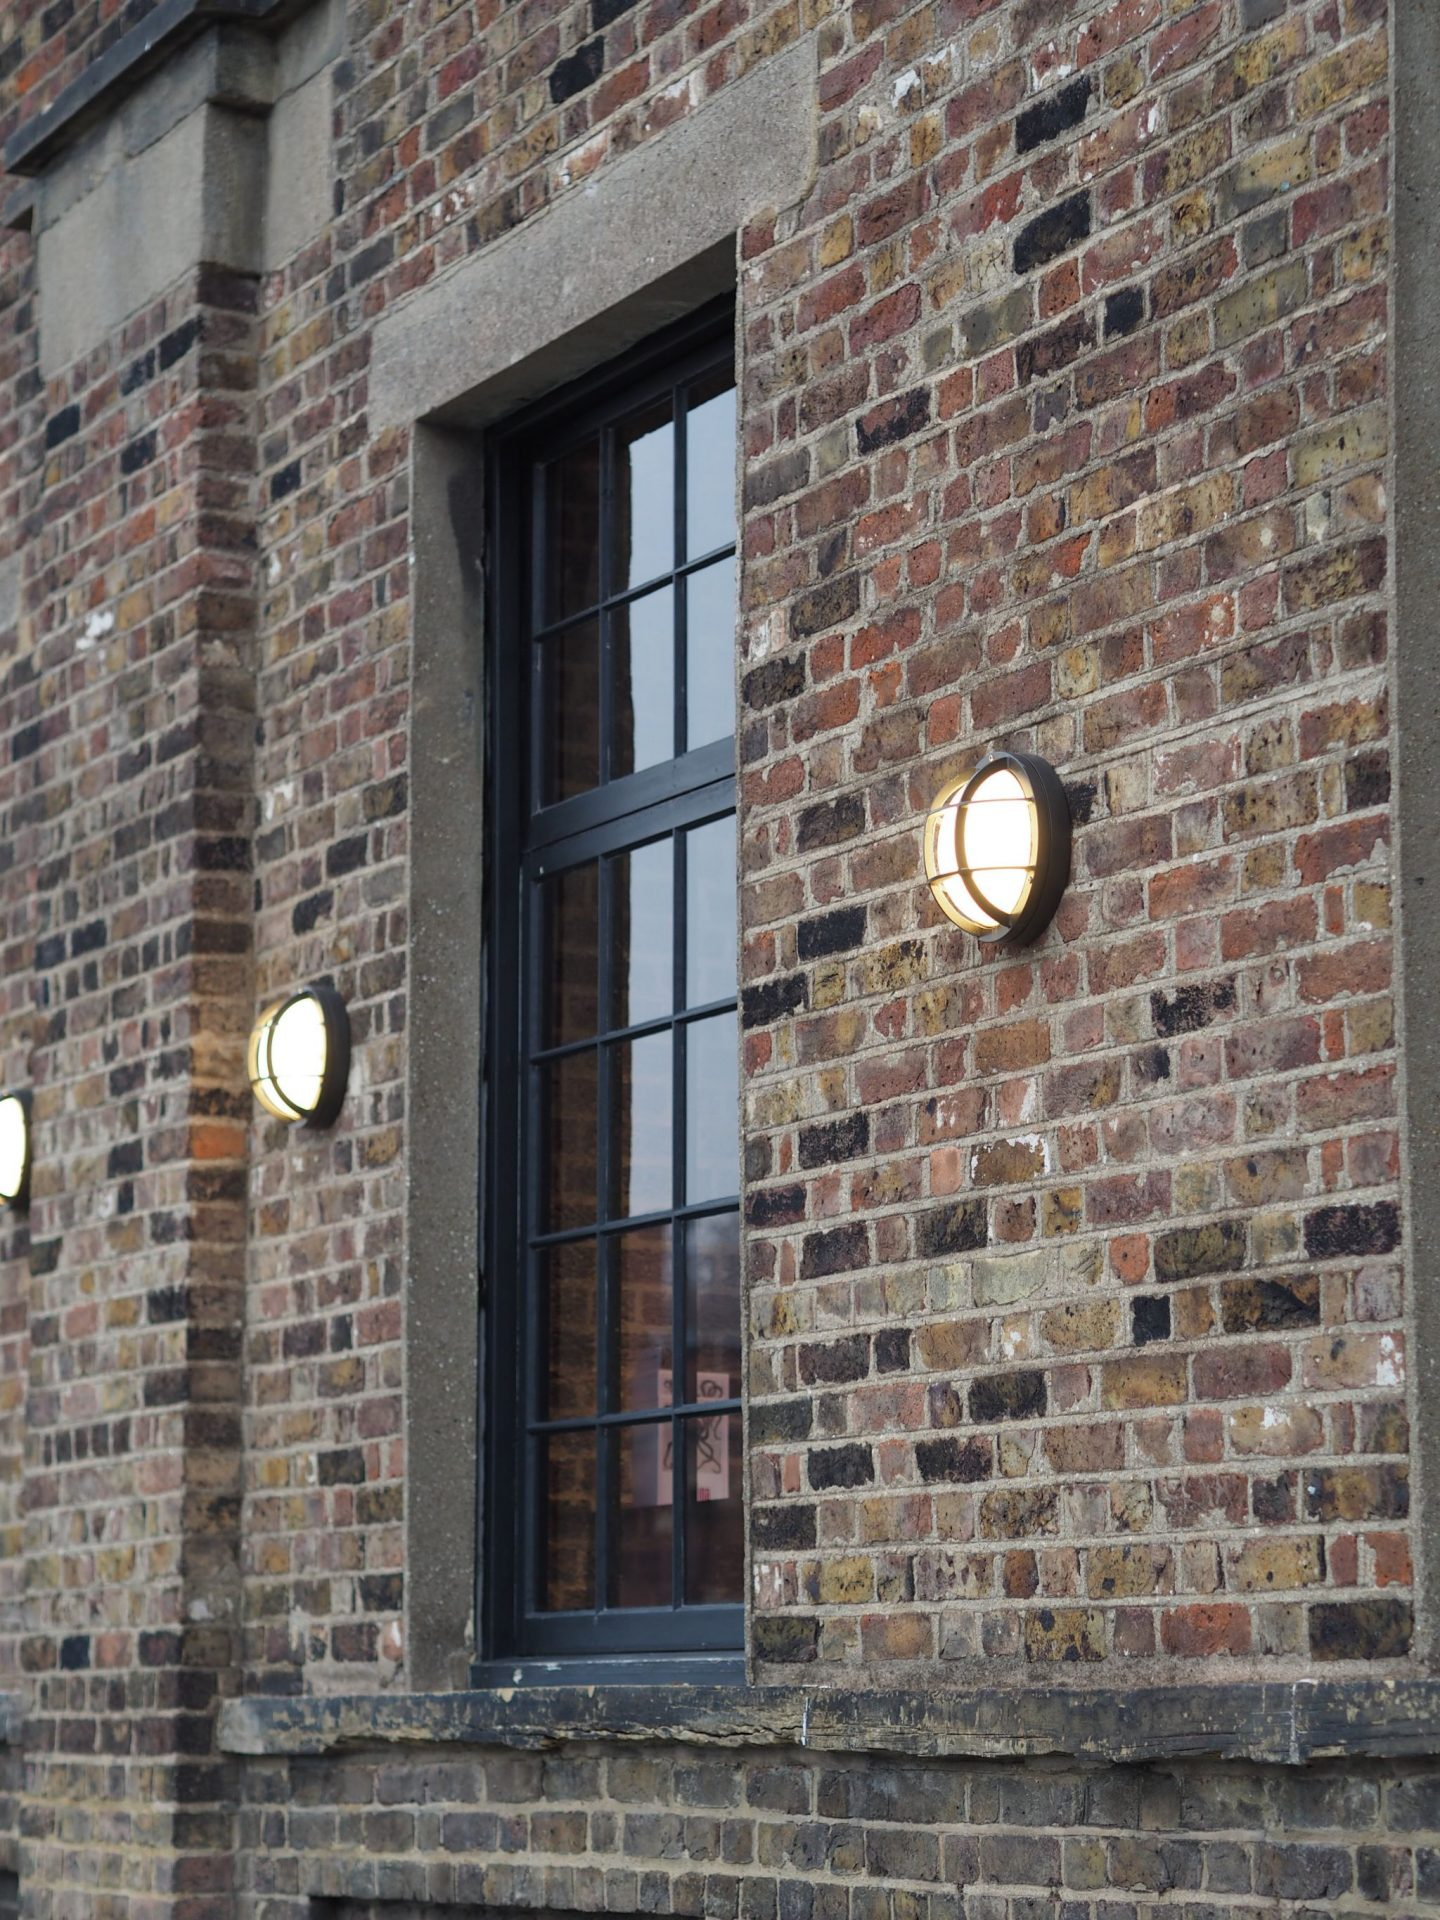 Coal Drops Yard, Victorian Architecture, Brickwork, Mary Middleton for Hello Peagreen